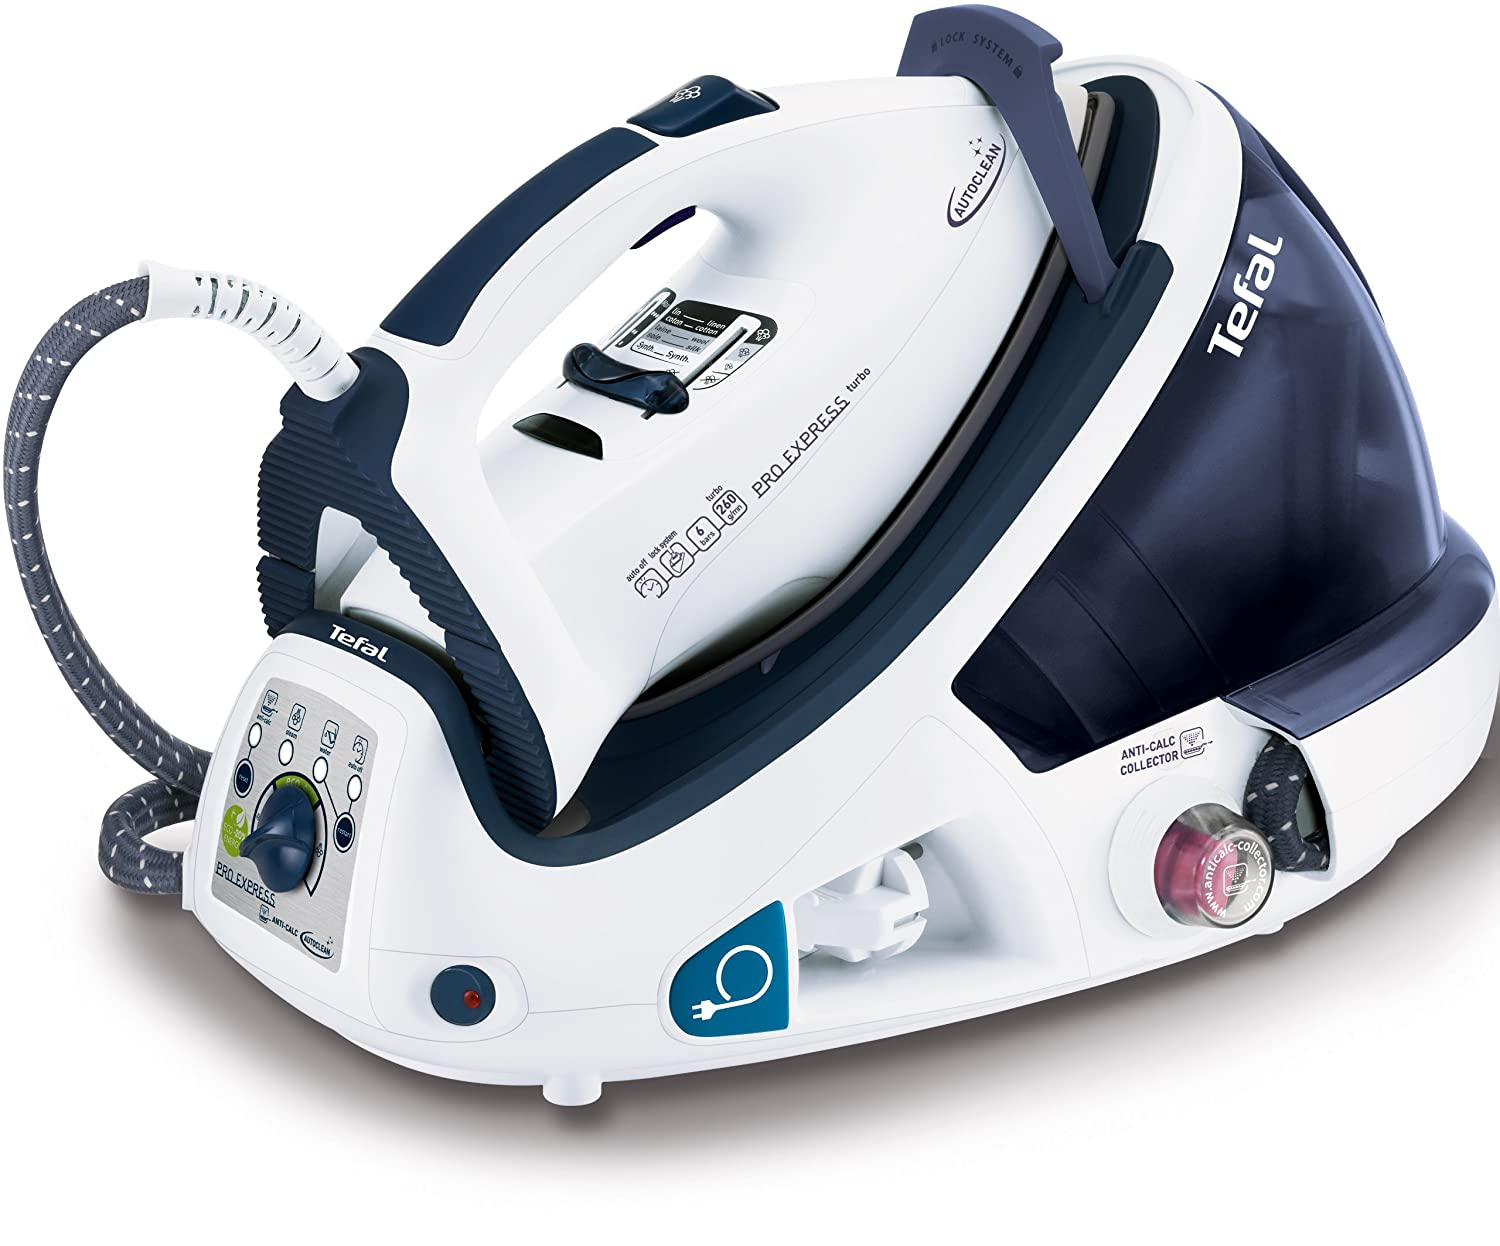 Steam generator iron review